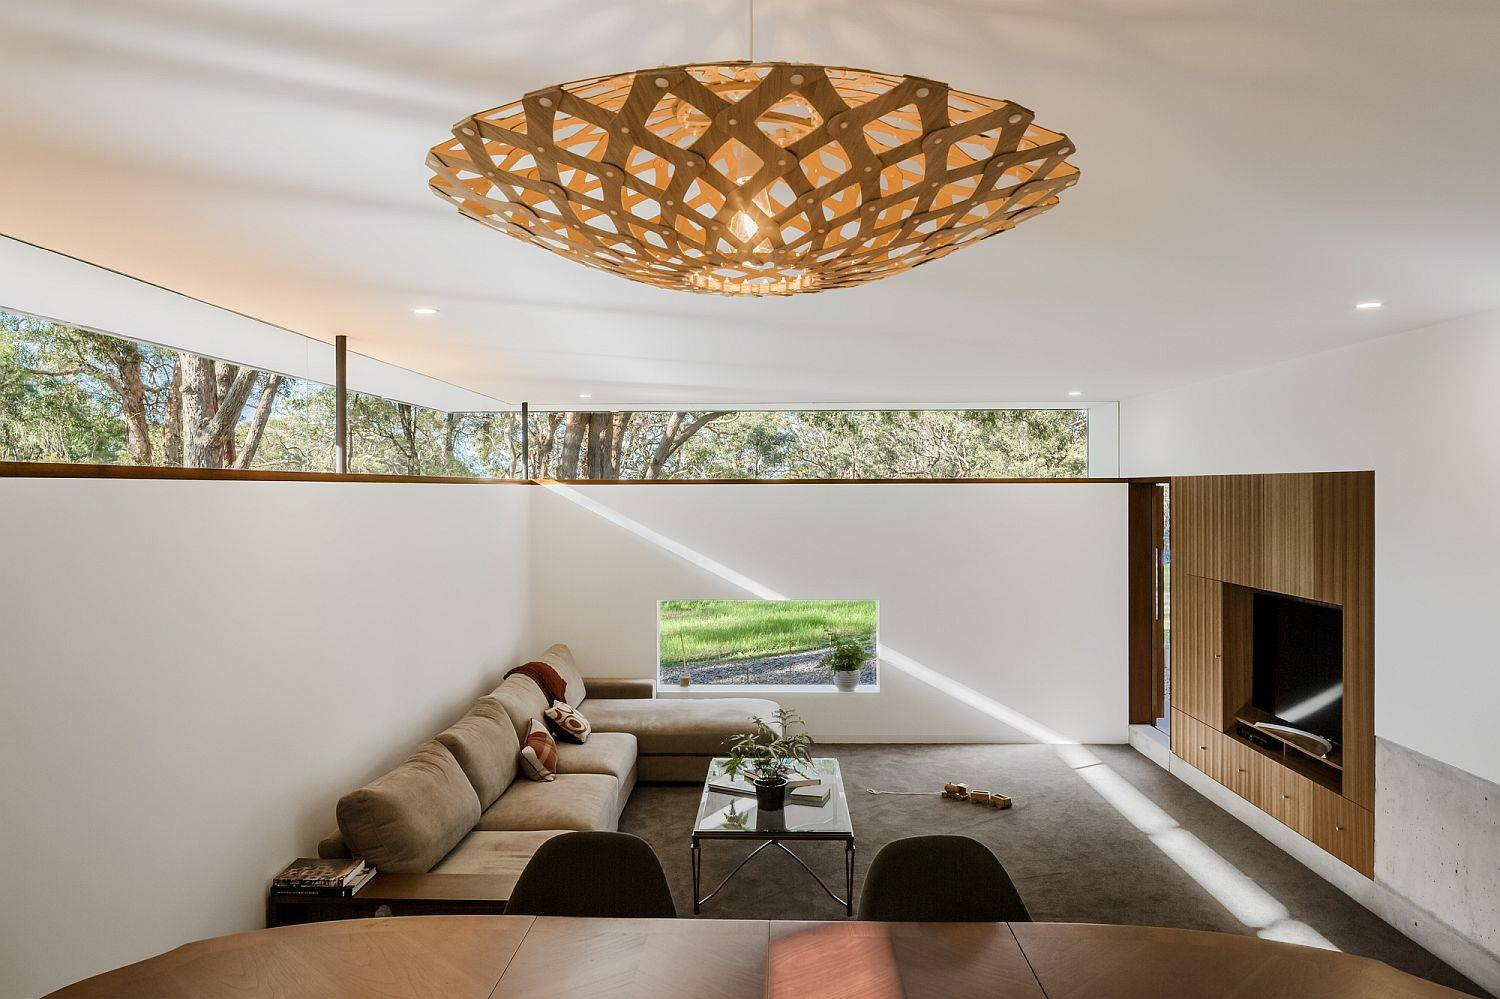 Use-clerestory-windows-to-add-both-brightness-and-greenery-to-the-modern-home-83811